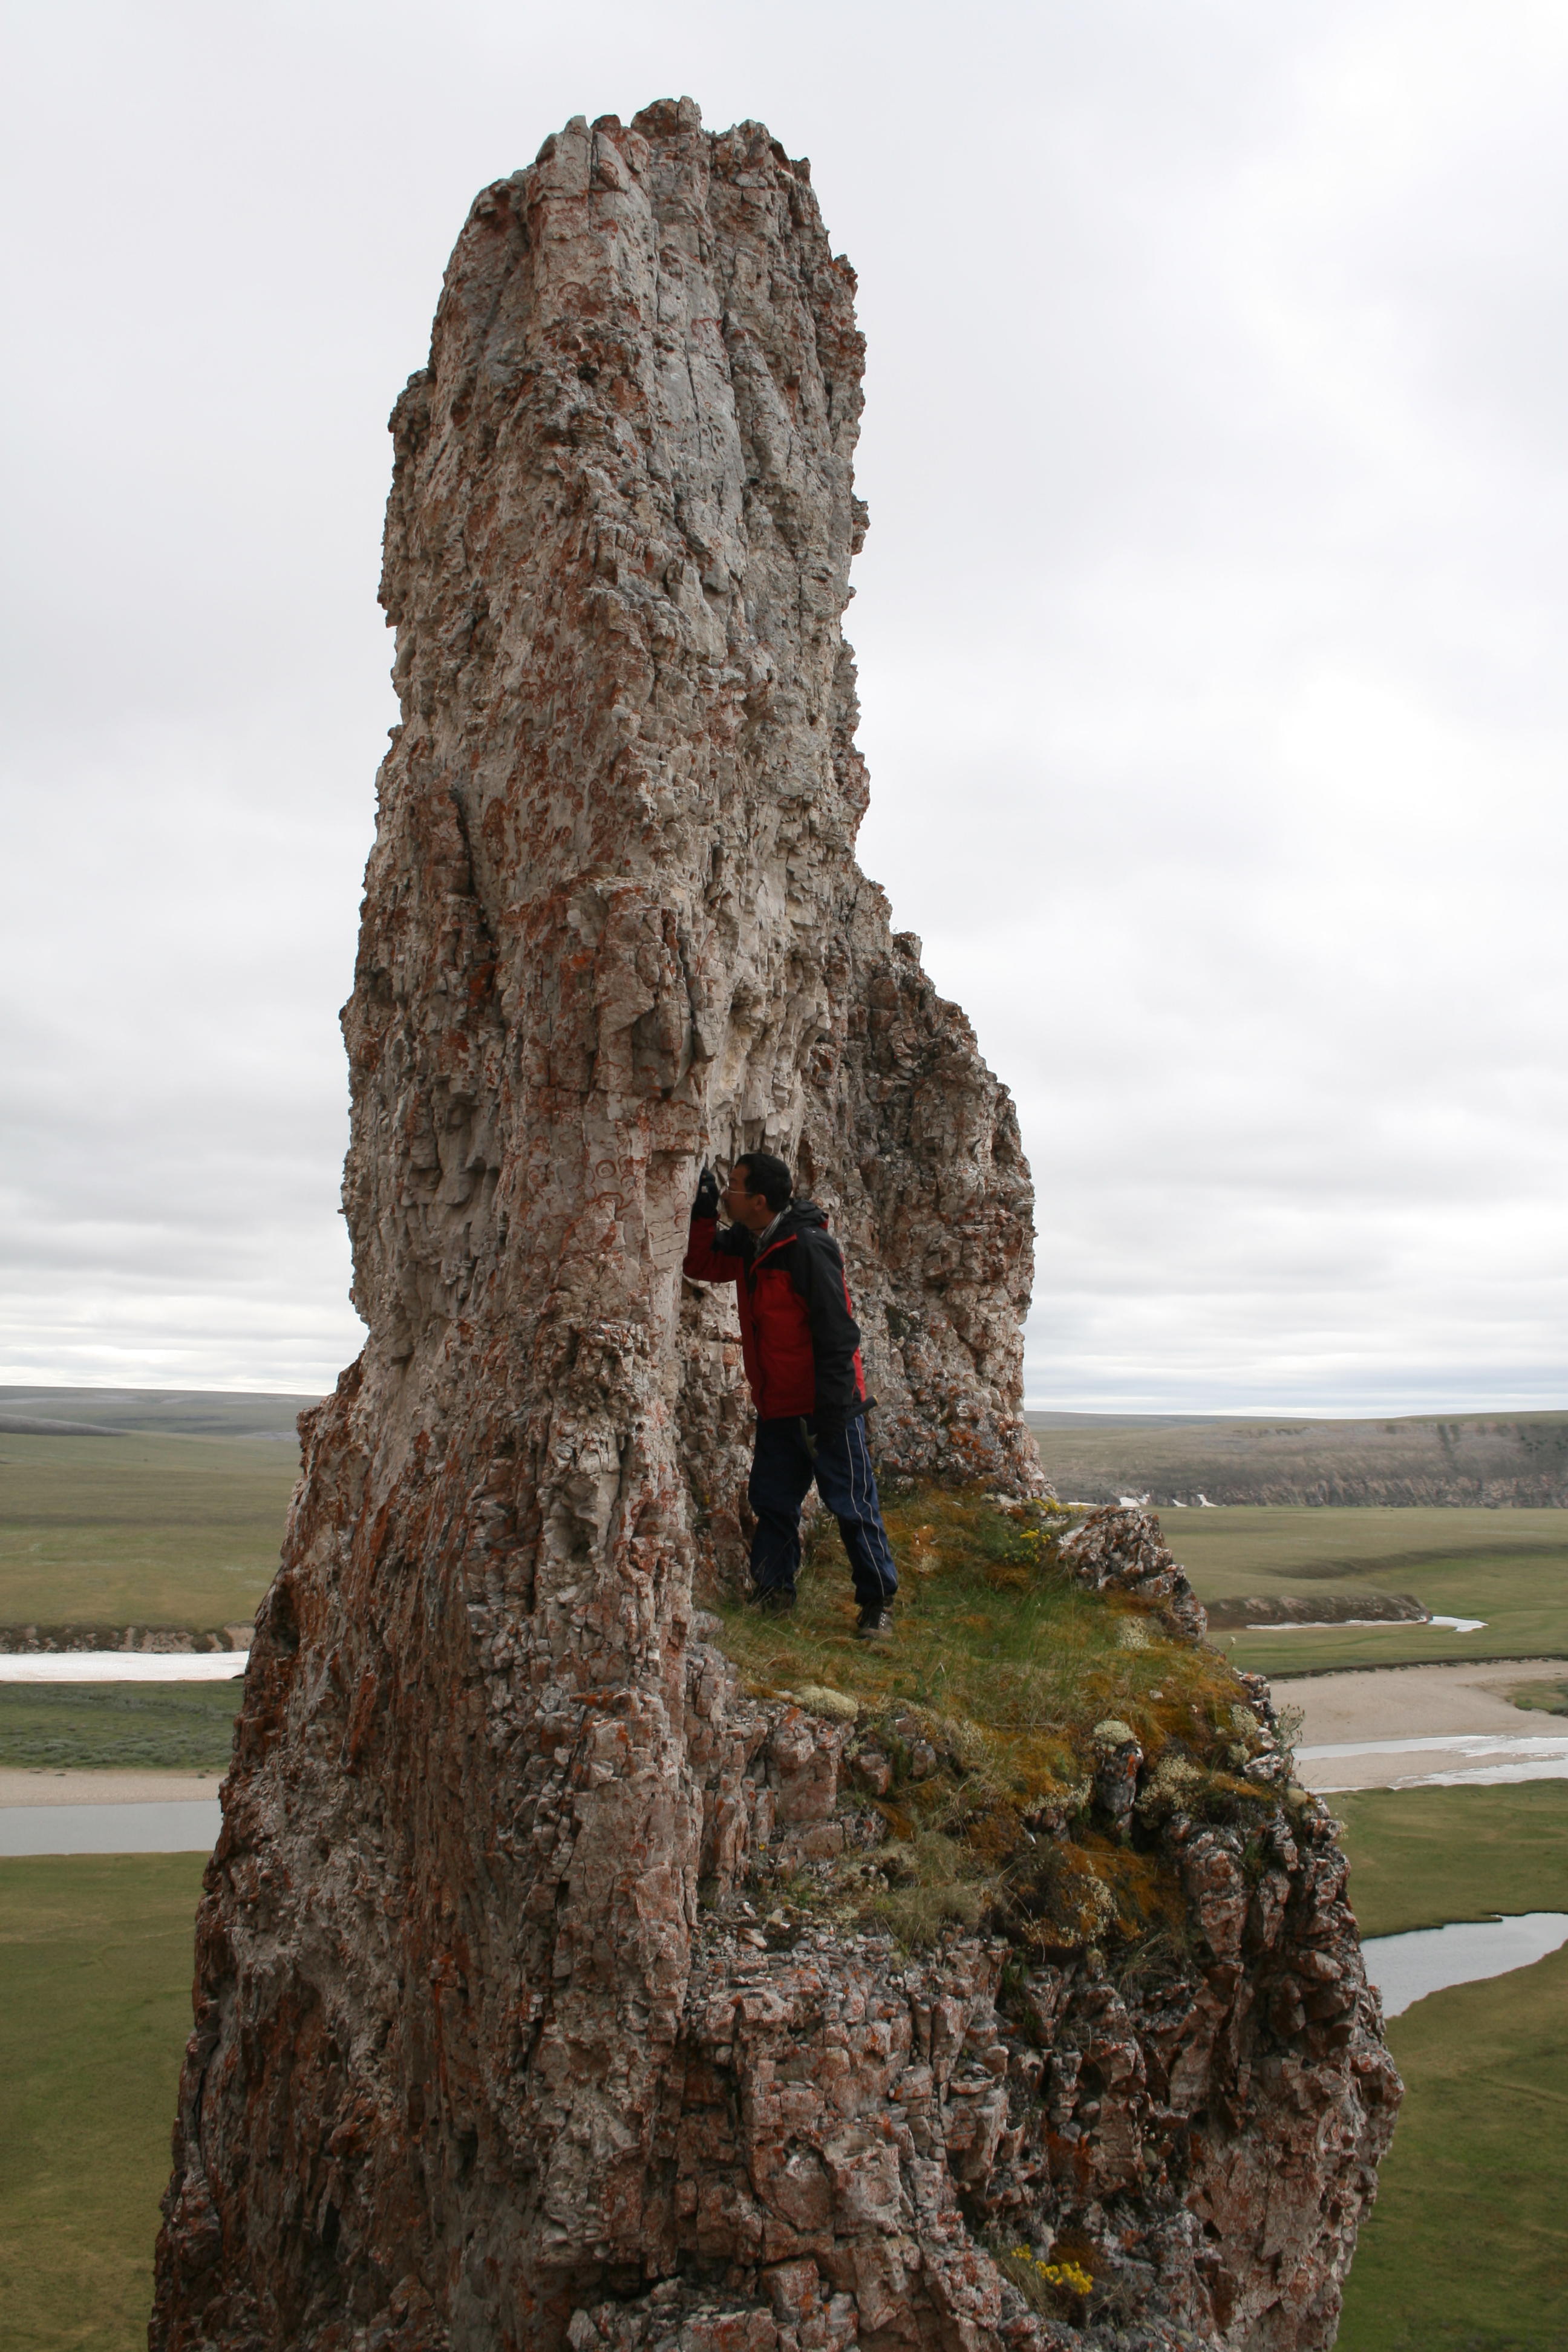 Except for formations such as this dolostone column of the Turkut Formation near the Khorbusonka River, the Siberian Arctic is flat. During his exploration of such formations, Virginia Tech geobiologist Shuhai Xiao and collaborators found many fossils in these ancient rocks. Xiao has received a Guggenheim fellowship to support his research.